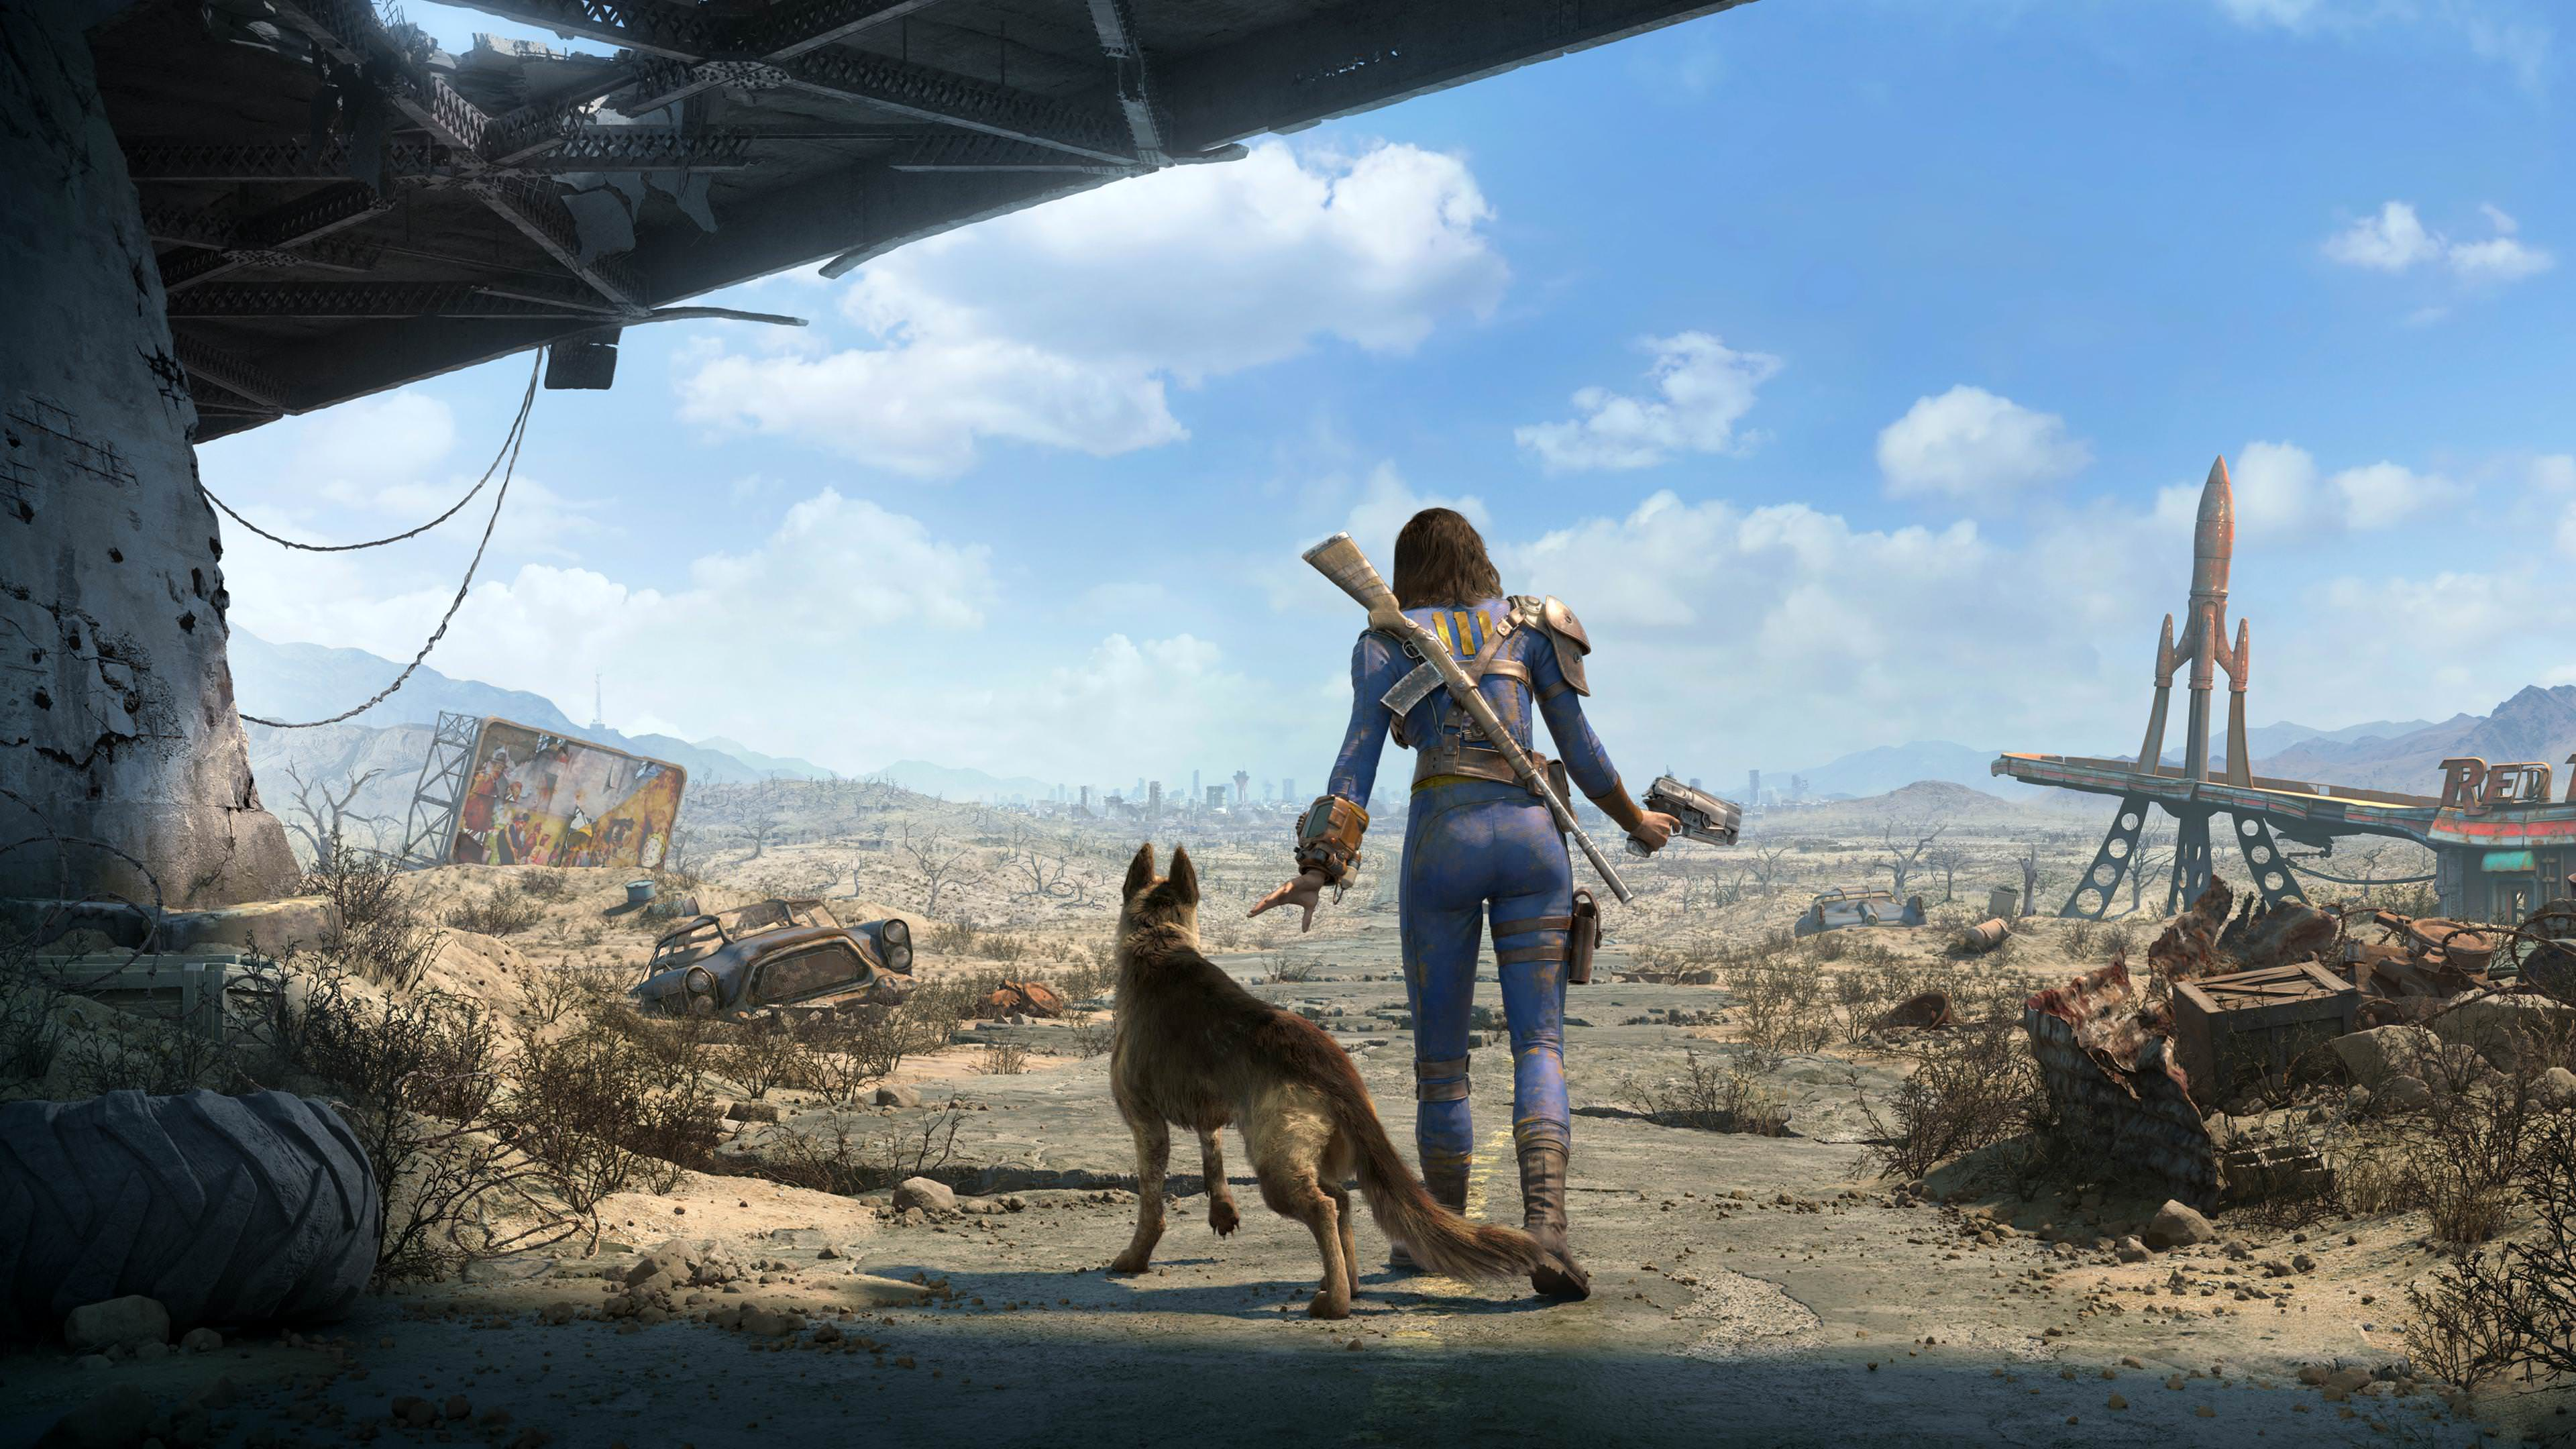 fallout 4 game 2019 1572370694 - Fallout 4 Game 2019 - xbox games wallpapers, ps4 games wallpapers, pc games wallpapers, hd-wallpapers, games wallpapers, fallout 4 wallpapers, 4k-wallpapers